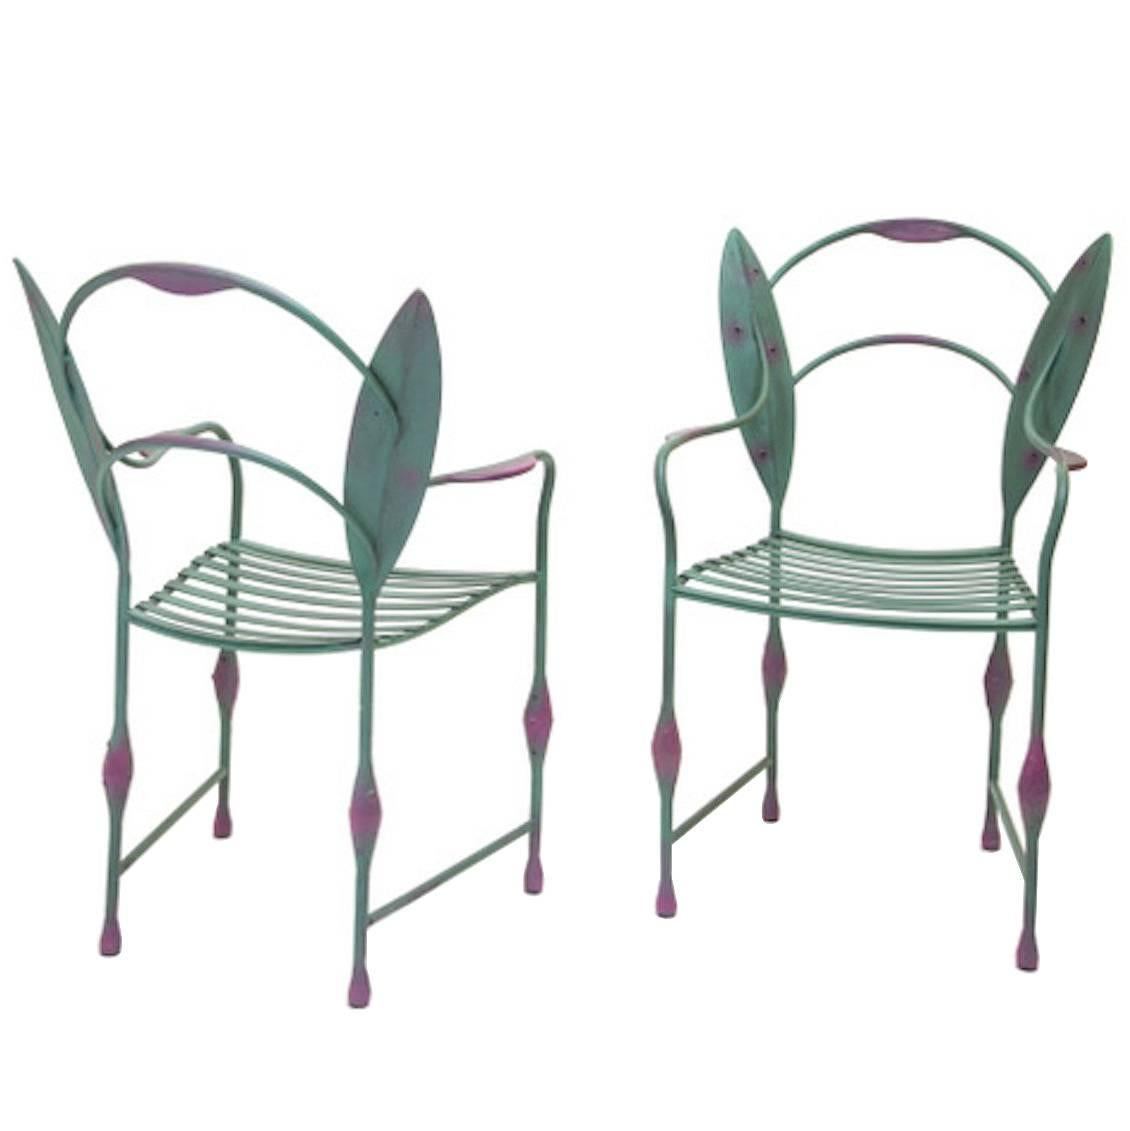 Two Wrought Iron Chairs by Andrea Branzi Prototype, Italy